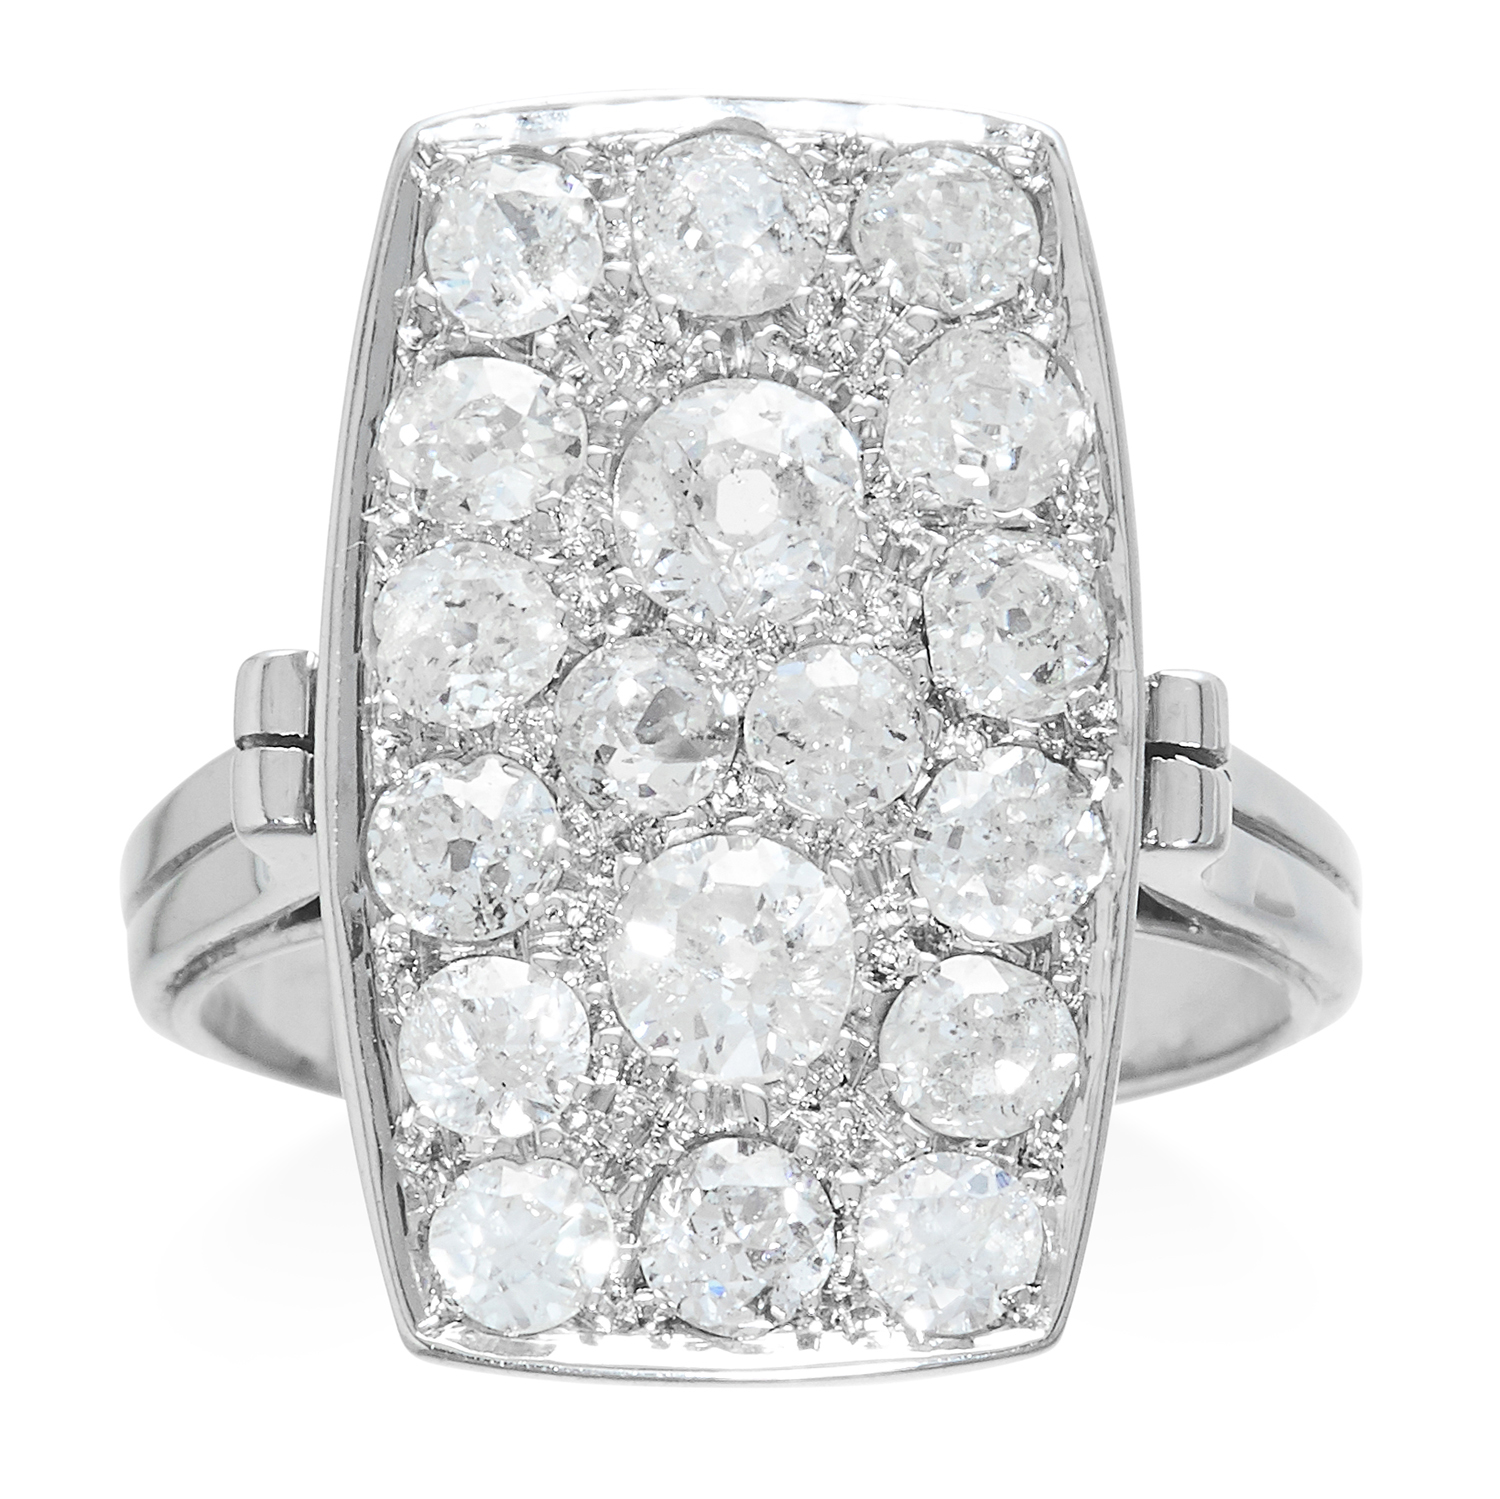 Los 308 - AN ART DECO DIAMOND RING in platinum or white gold, the rectangular face jewelled with old cut